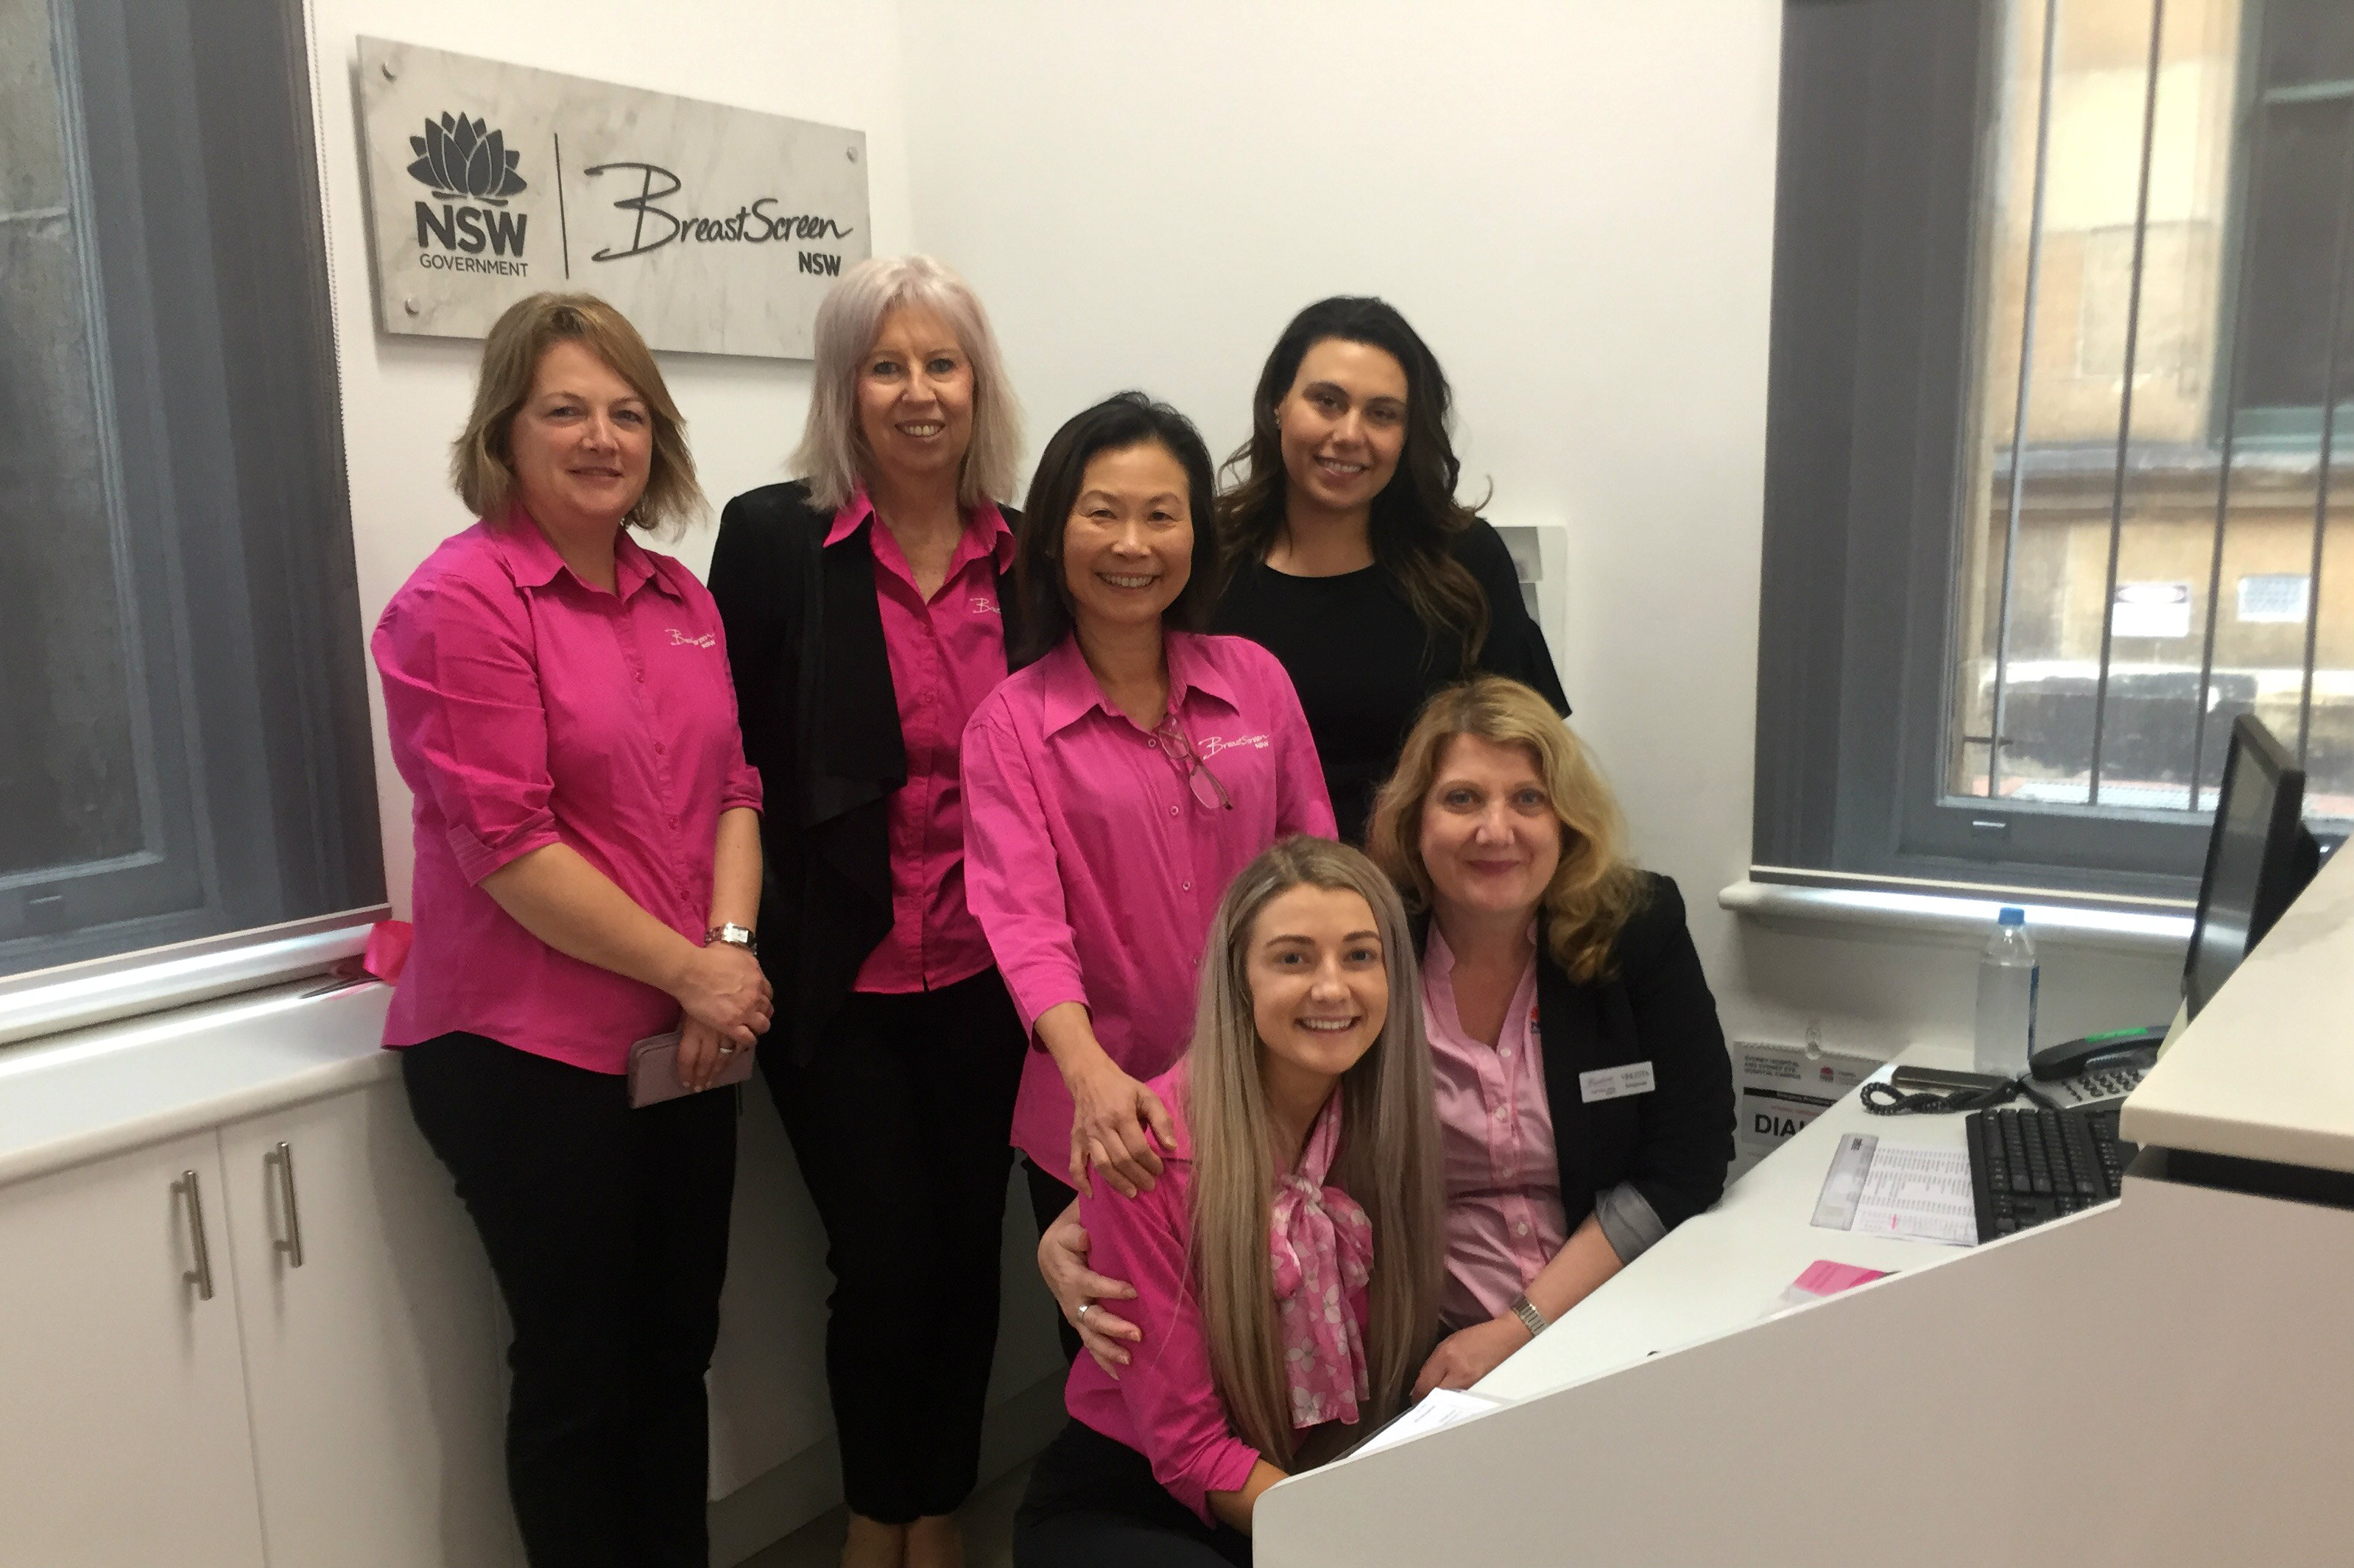 Staff in pink t-shirts at reception desk